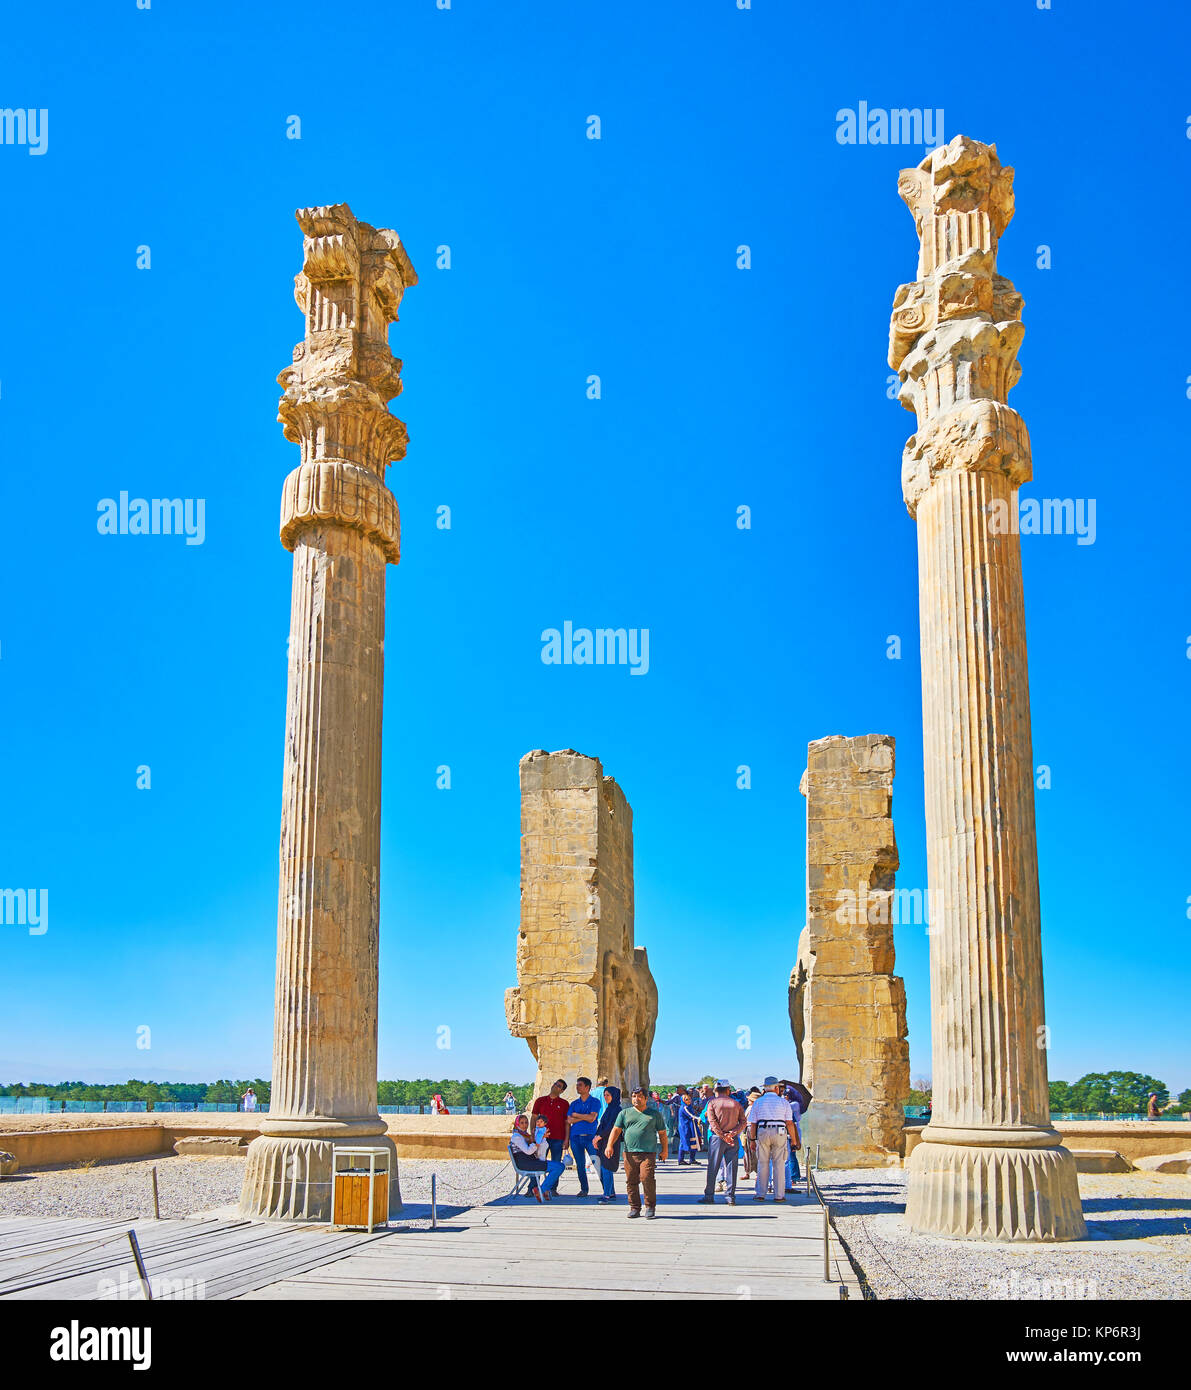 PERSEPOLIS, IRAN - OCTOBER 13, 2017: The walk through the All Nations Gate (Xerxes Gate) in Persepolis archaeological Stock Photo